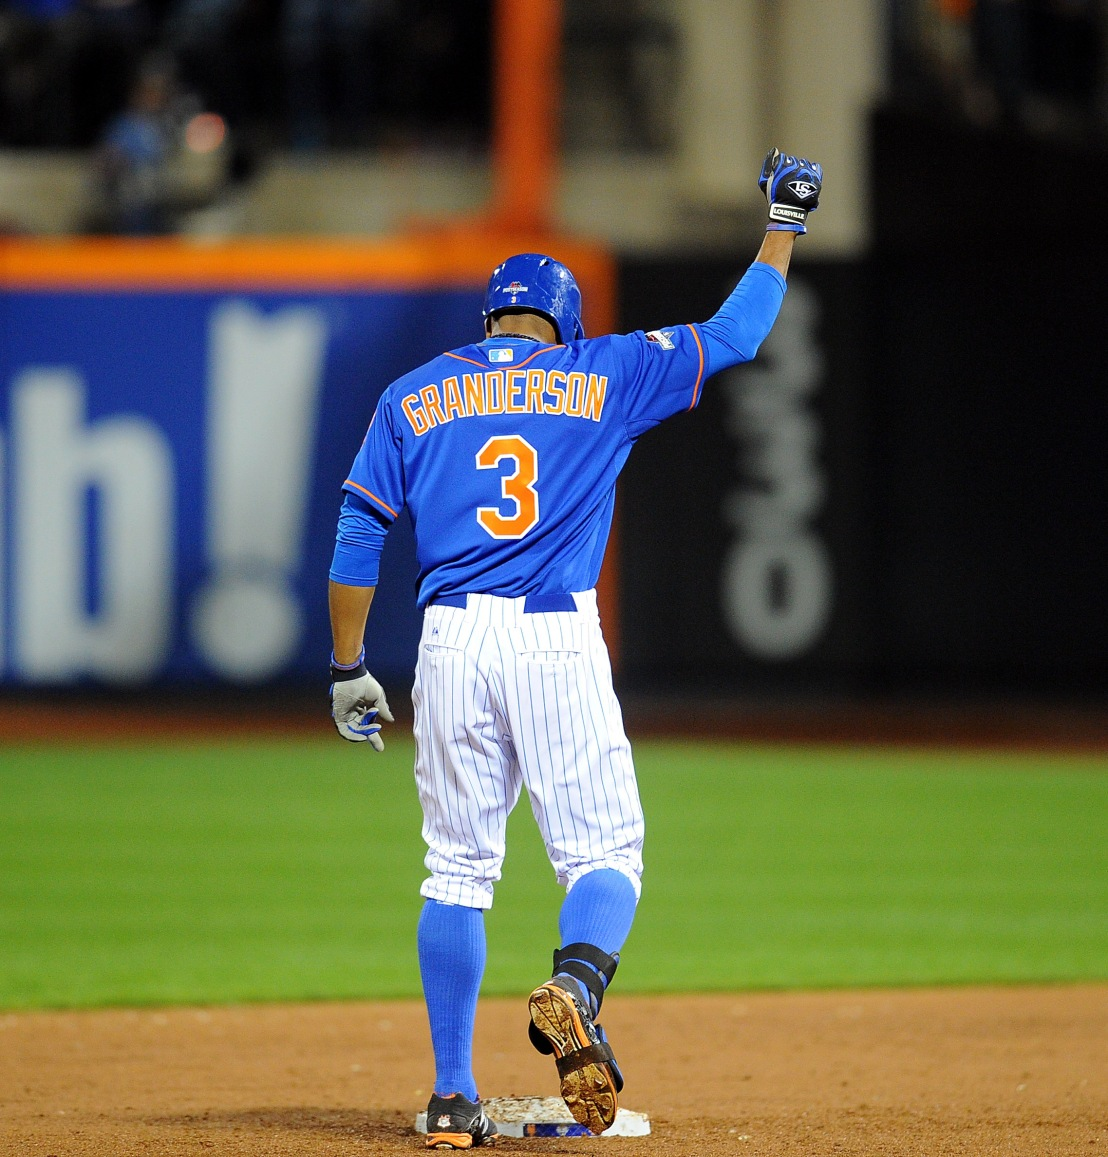 Thank you, Curtis Granderson